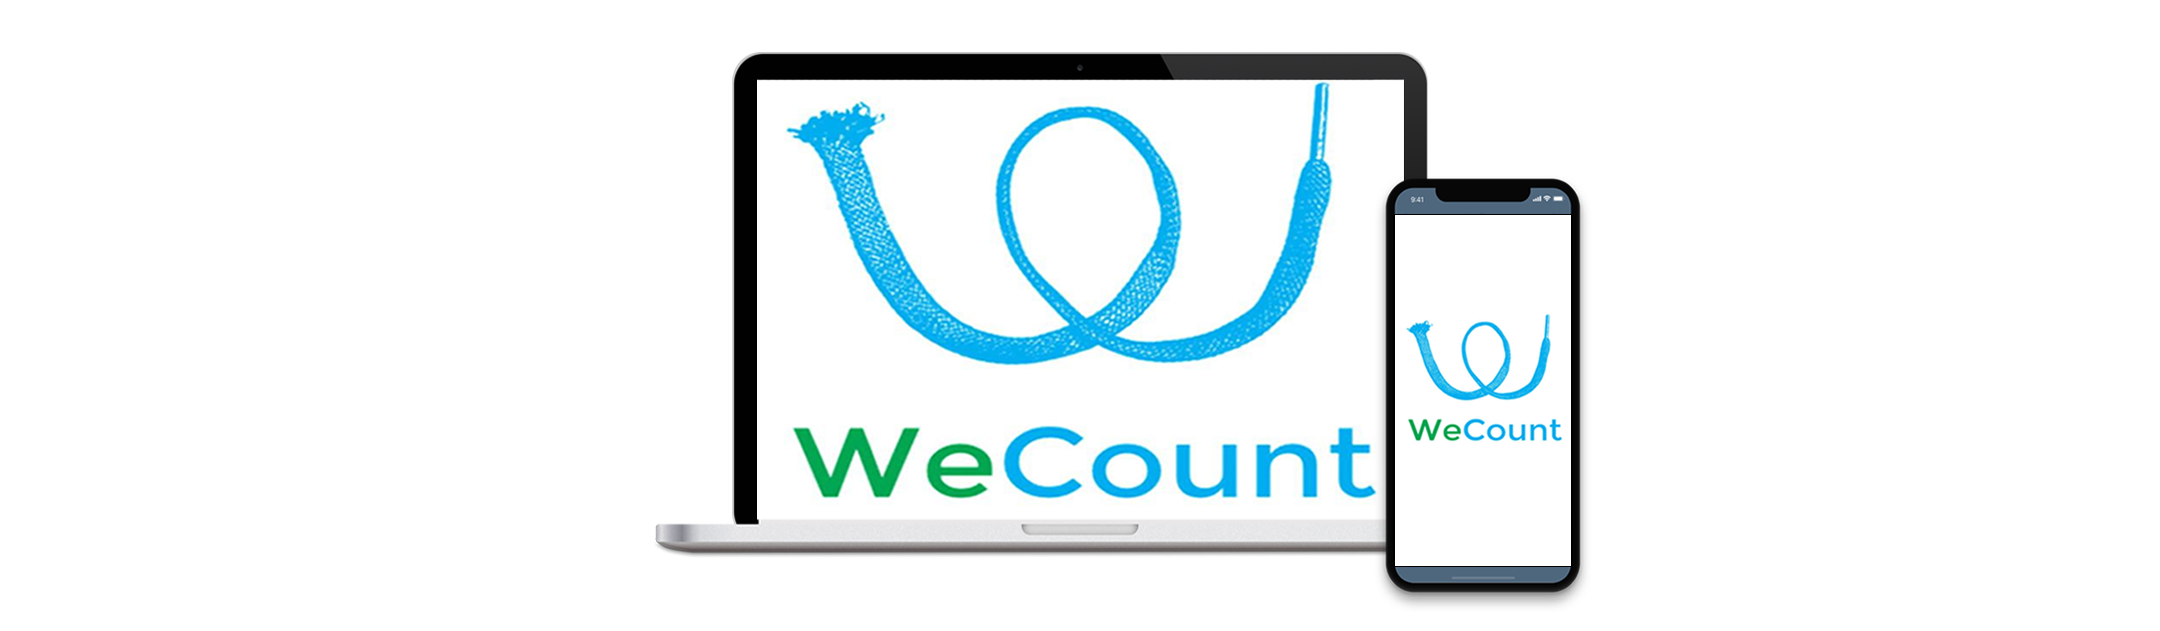 WeCount Mac no background.png